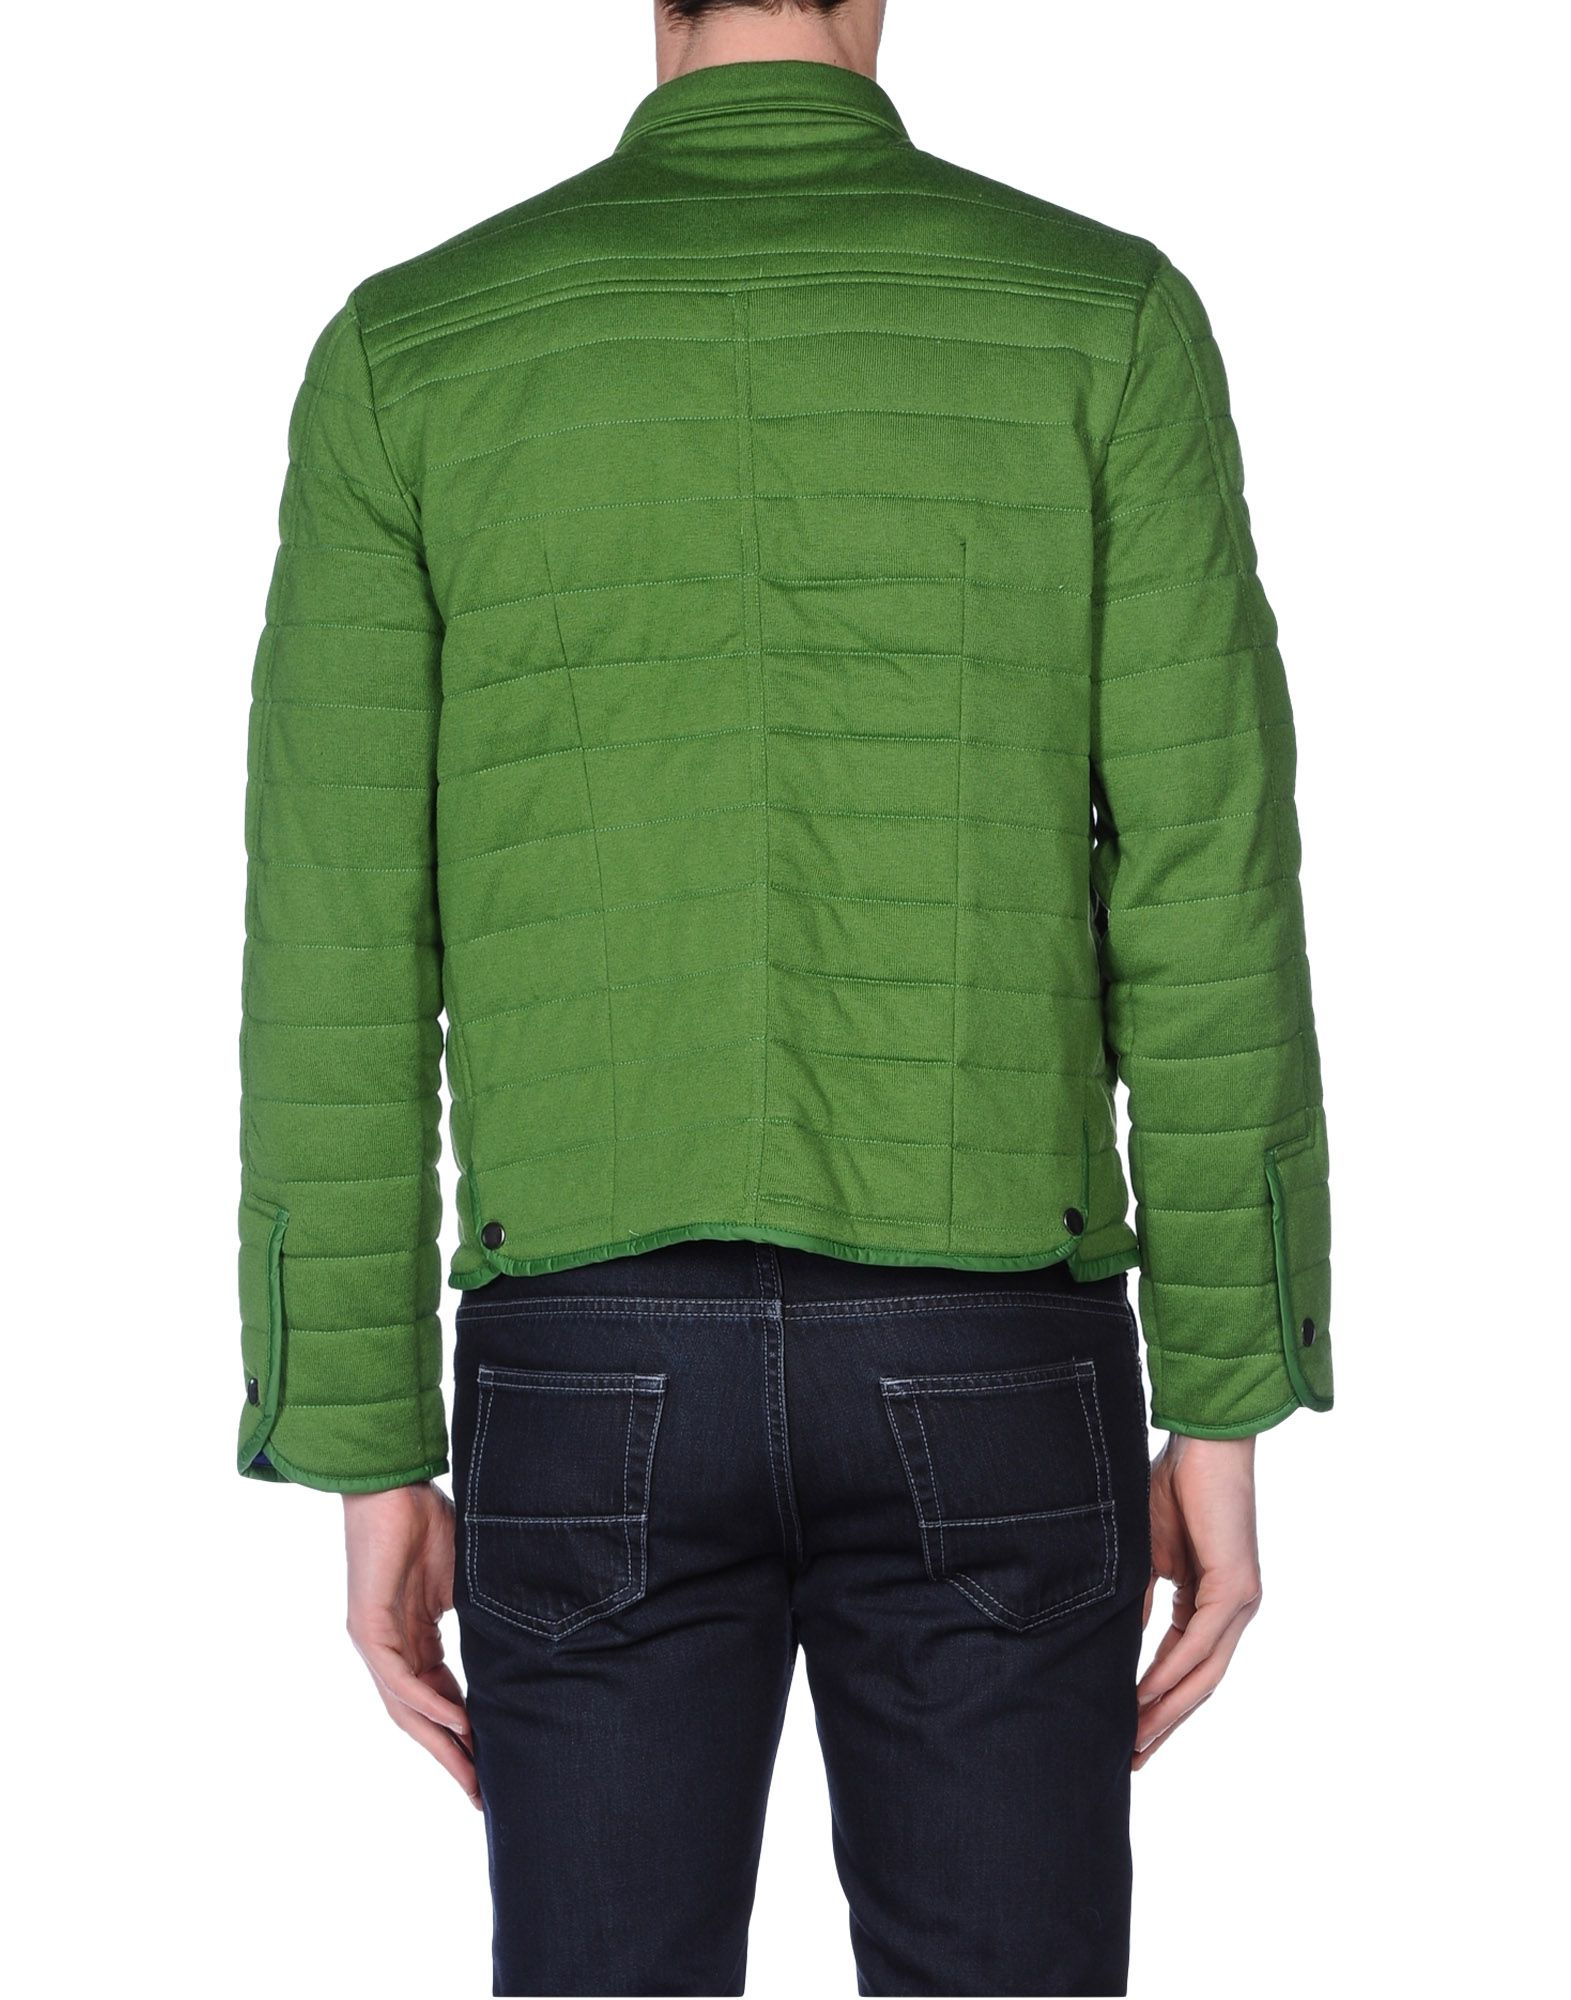 Kaos jacket in green for men emerald green lyst Emerald green mens dress shirt